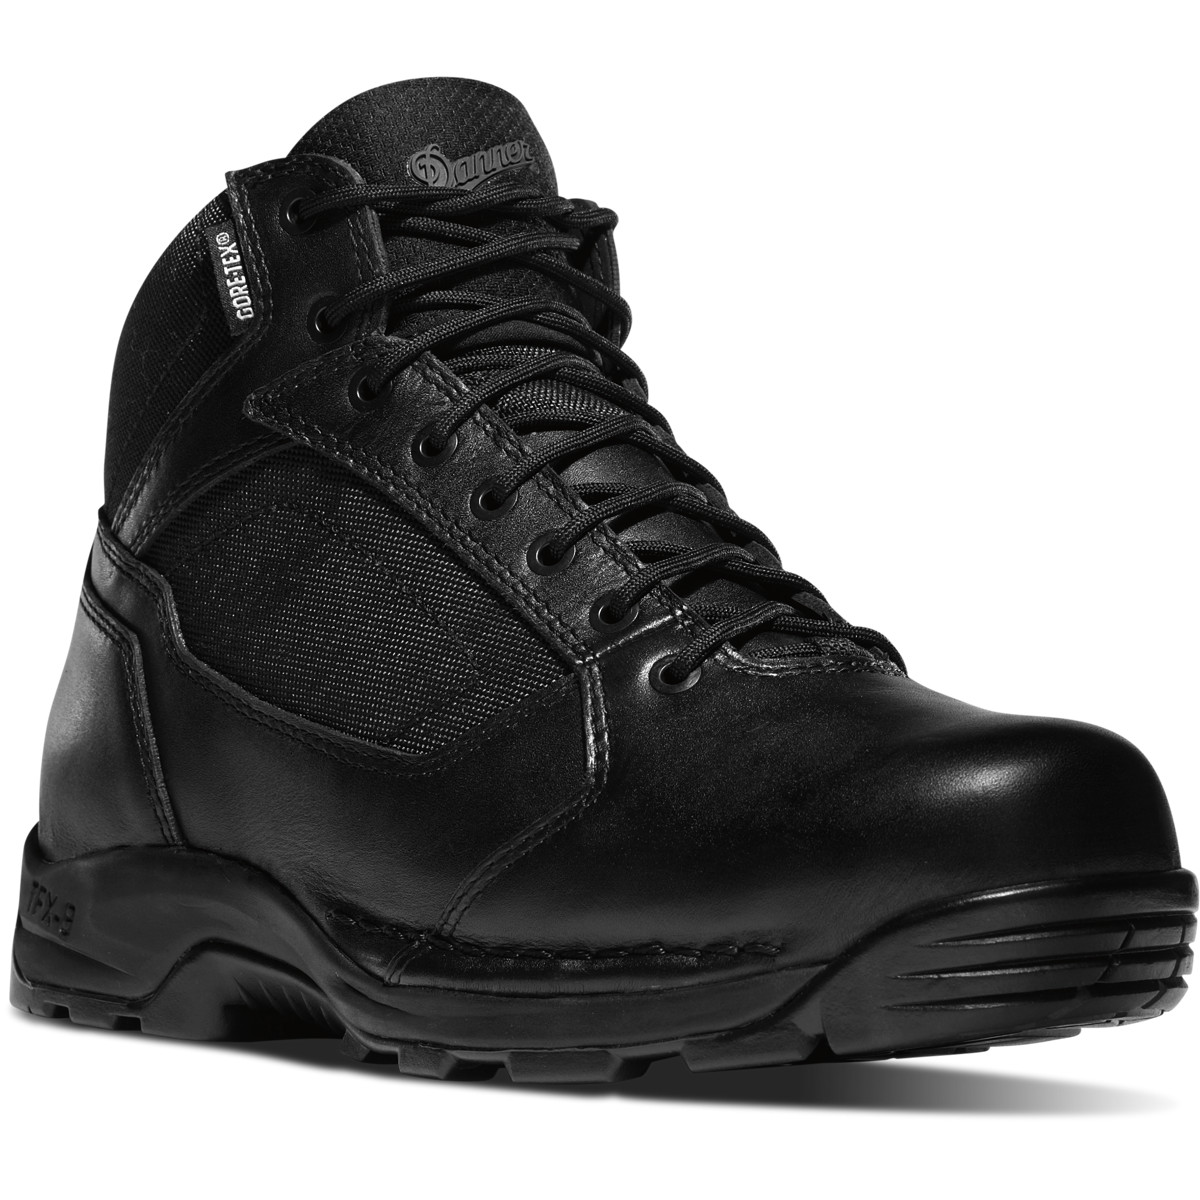 Women's Striker Torrent 45 4.5